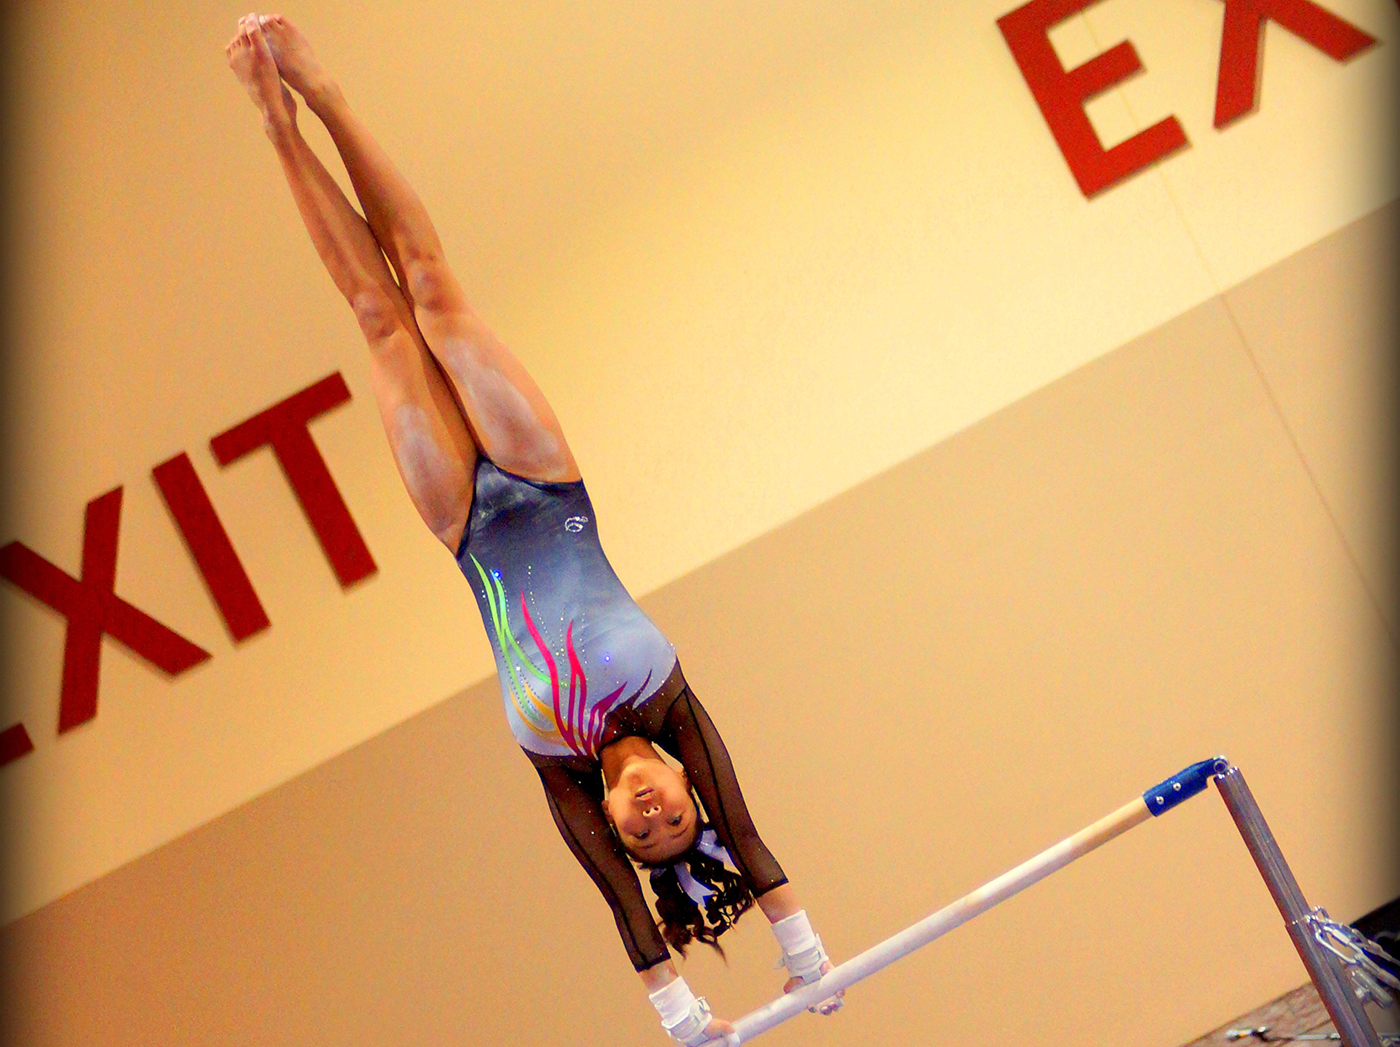 arizona rock and roll gymnastics meet photos